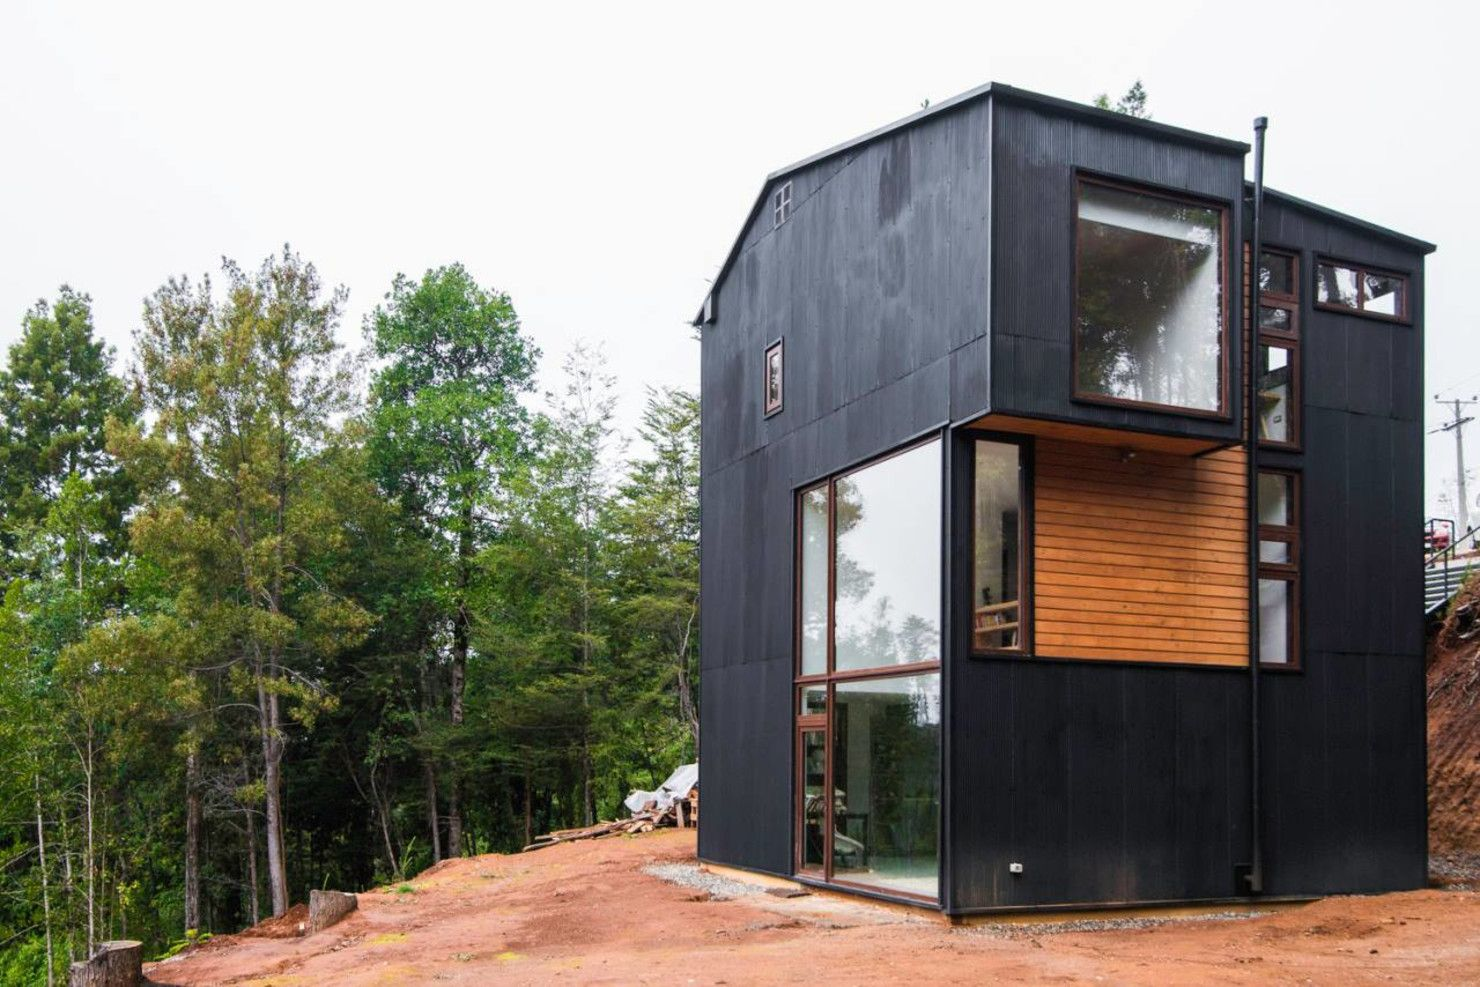 Container Homes 10 Inspiring And Affordable Ideas Container House Shipping Container Home Designs Building A Container Home